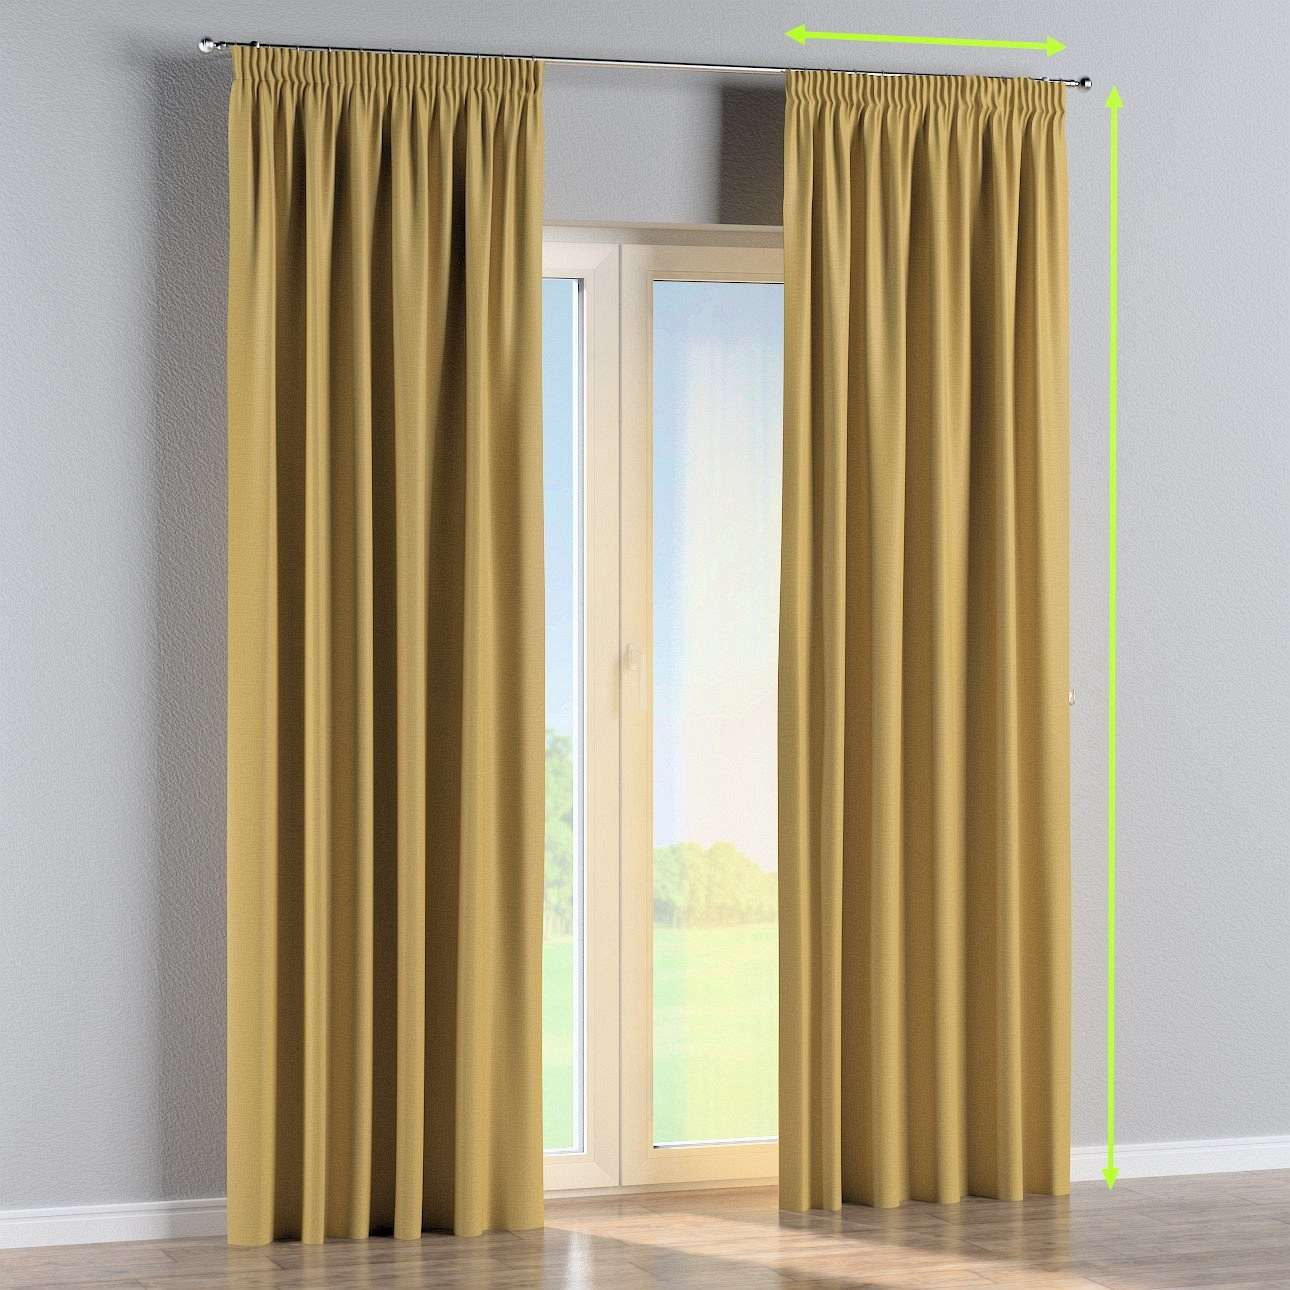 Pencil pleat curtain in collection Blackout, fabric: 269-68